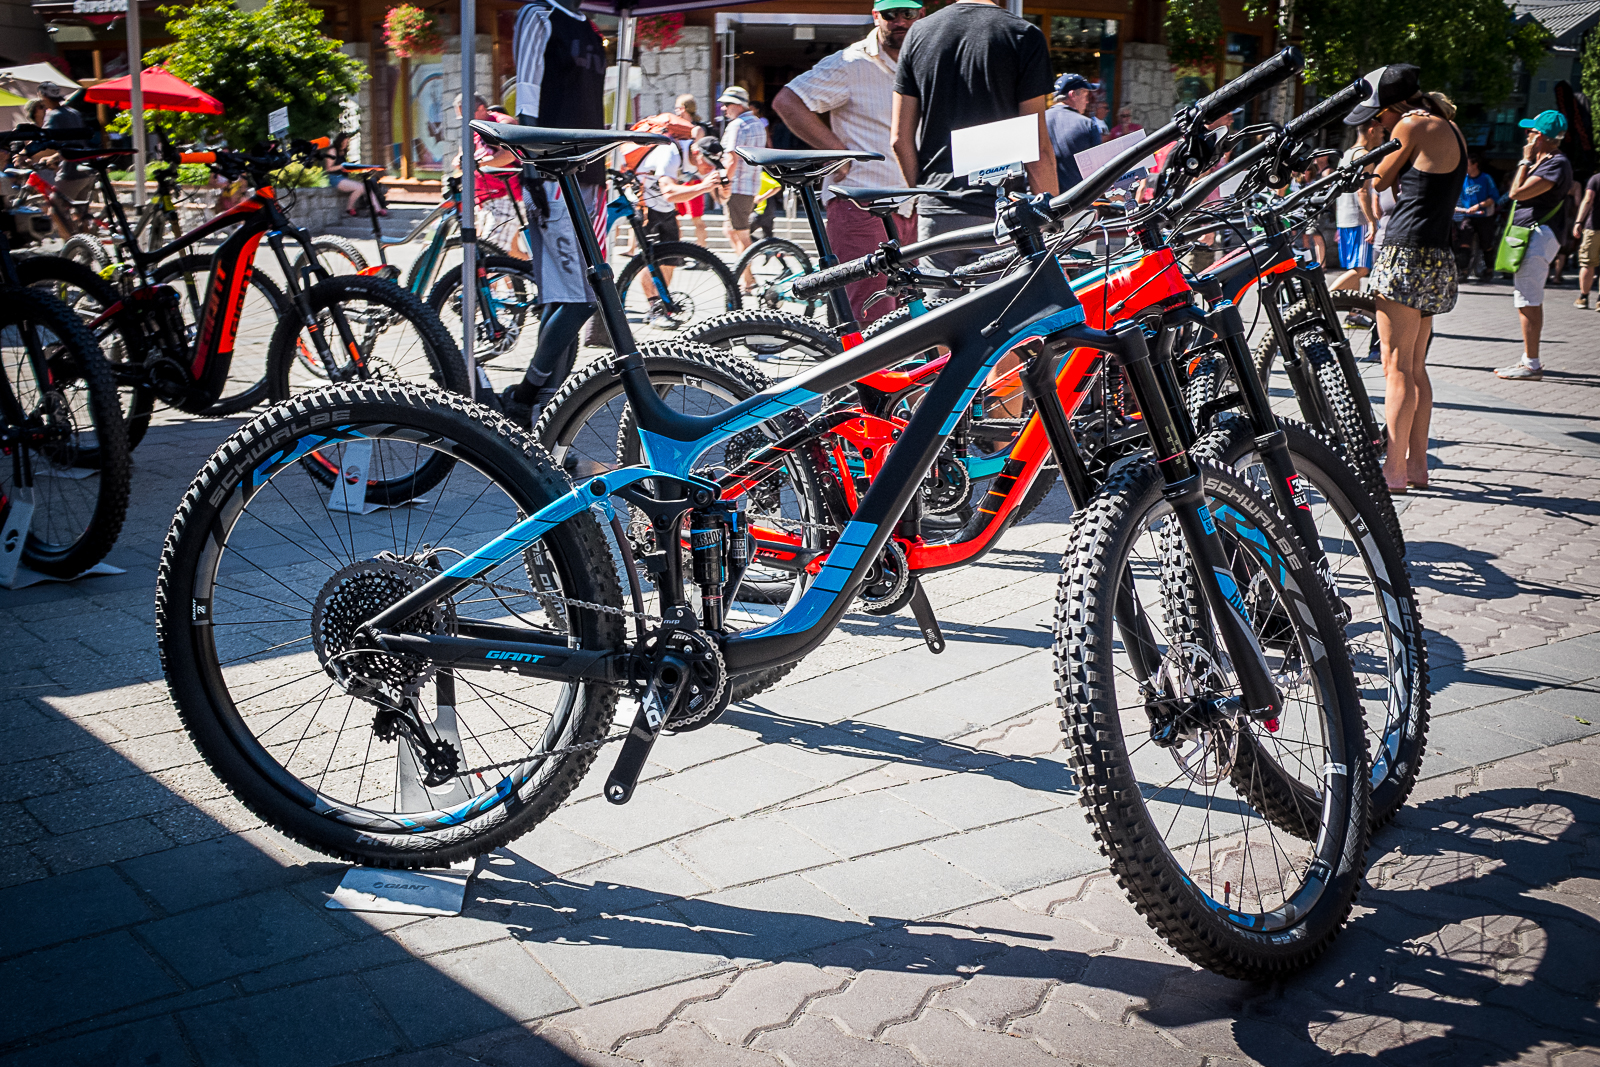 427a0bd59a6 The Giant Reign Advanced 0 features an advanced-grade composite frame,  160mm of Maestro suspension, a RockShox Lyrik RCT3 Solo Air (160mm) with  Boost ...